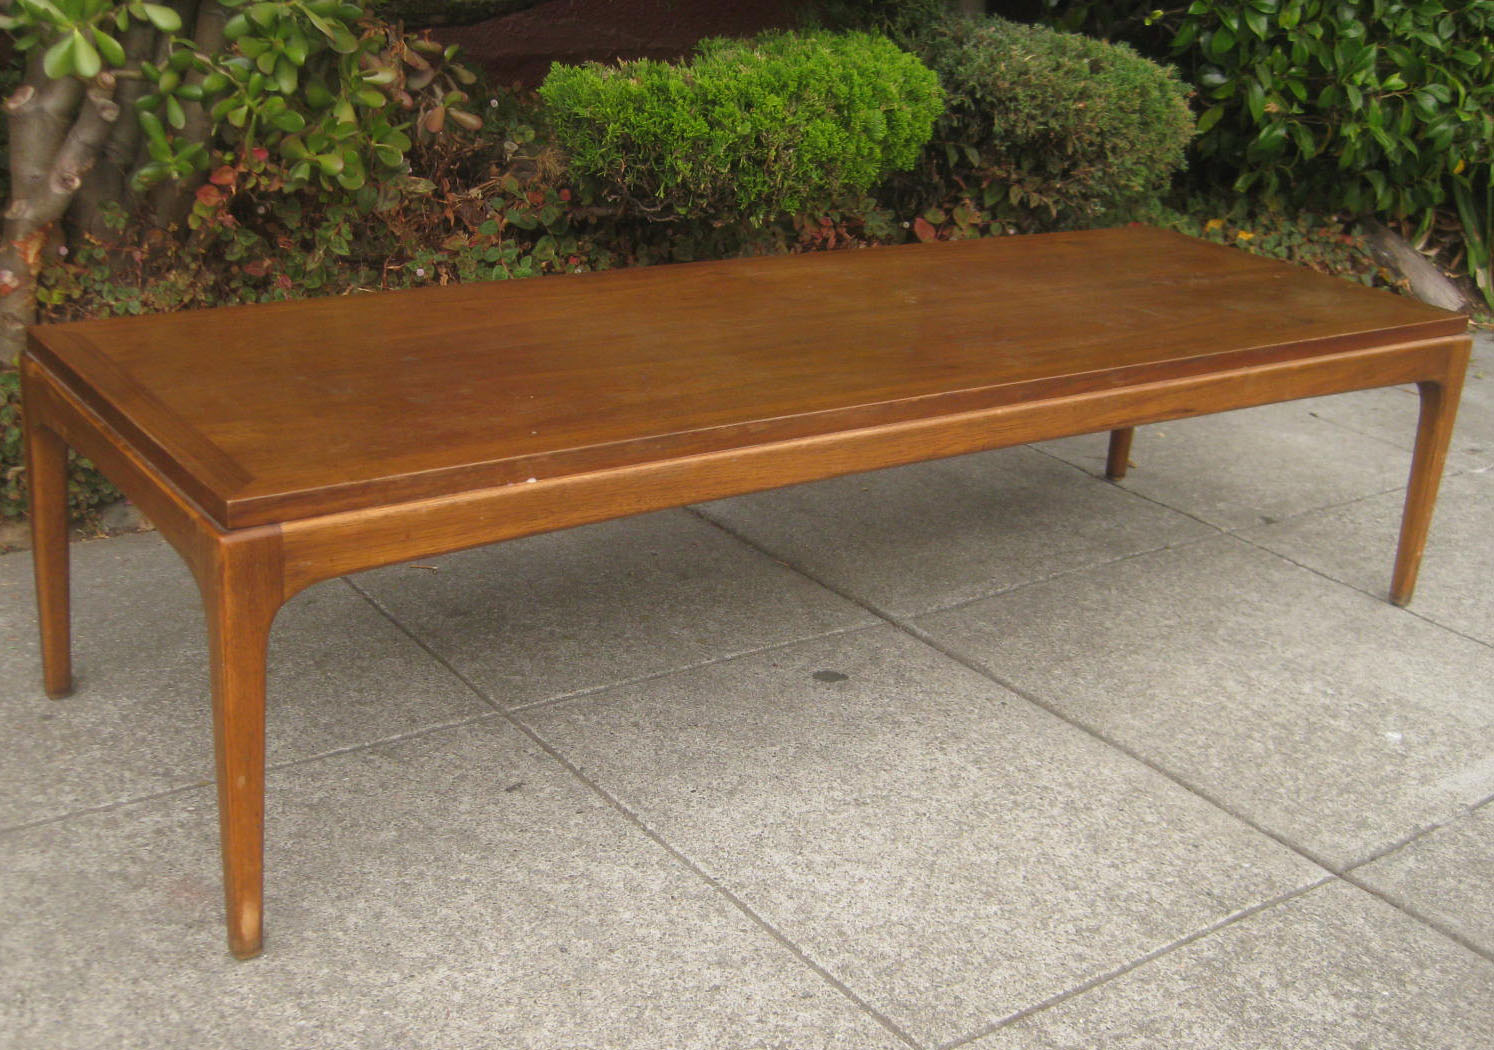 Uhuru furniture collectibles sold lane danish style for 60s style coffee table